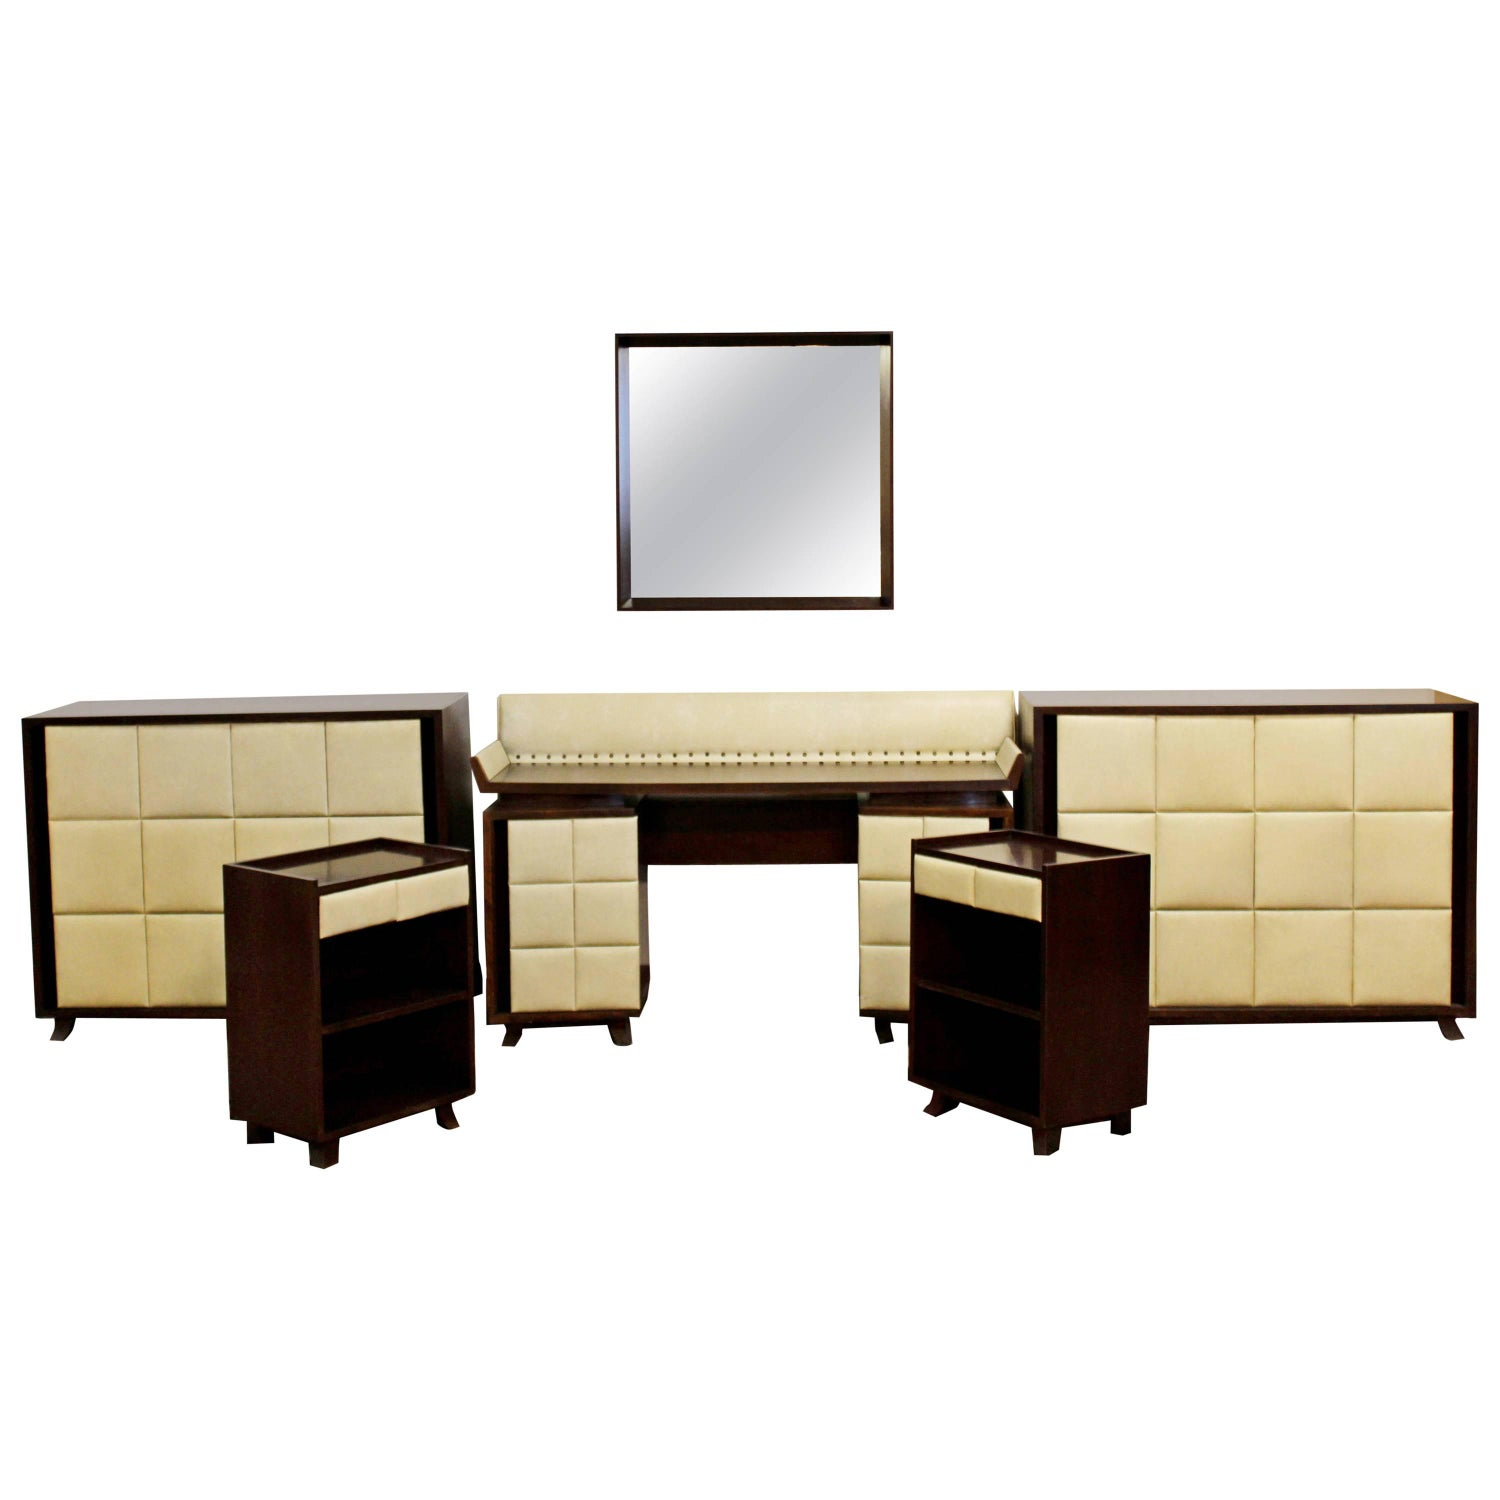 Art Deco Gilbert Rohde For Herman Miller Mahogany Seven Piece Bedroom Set 1930s